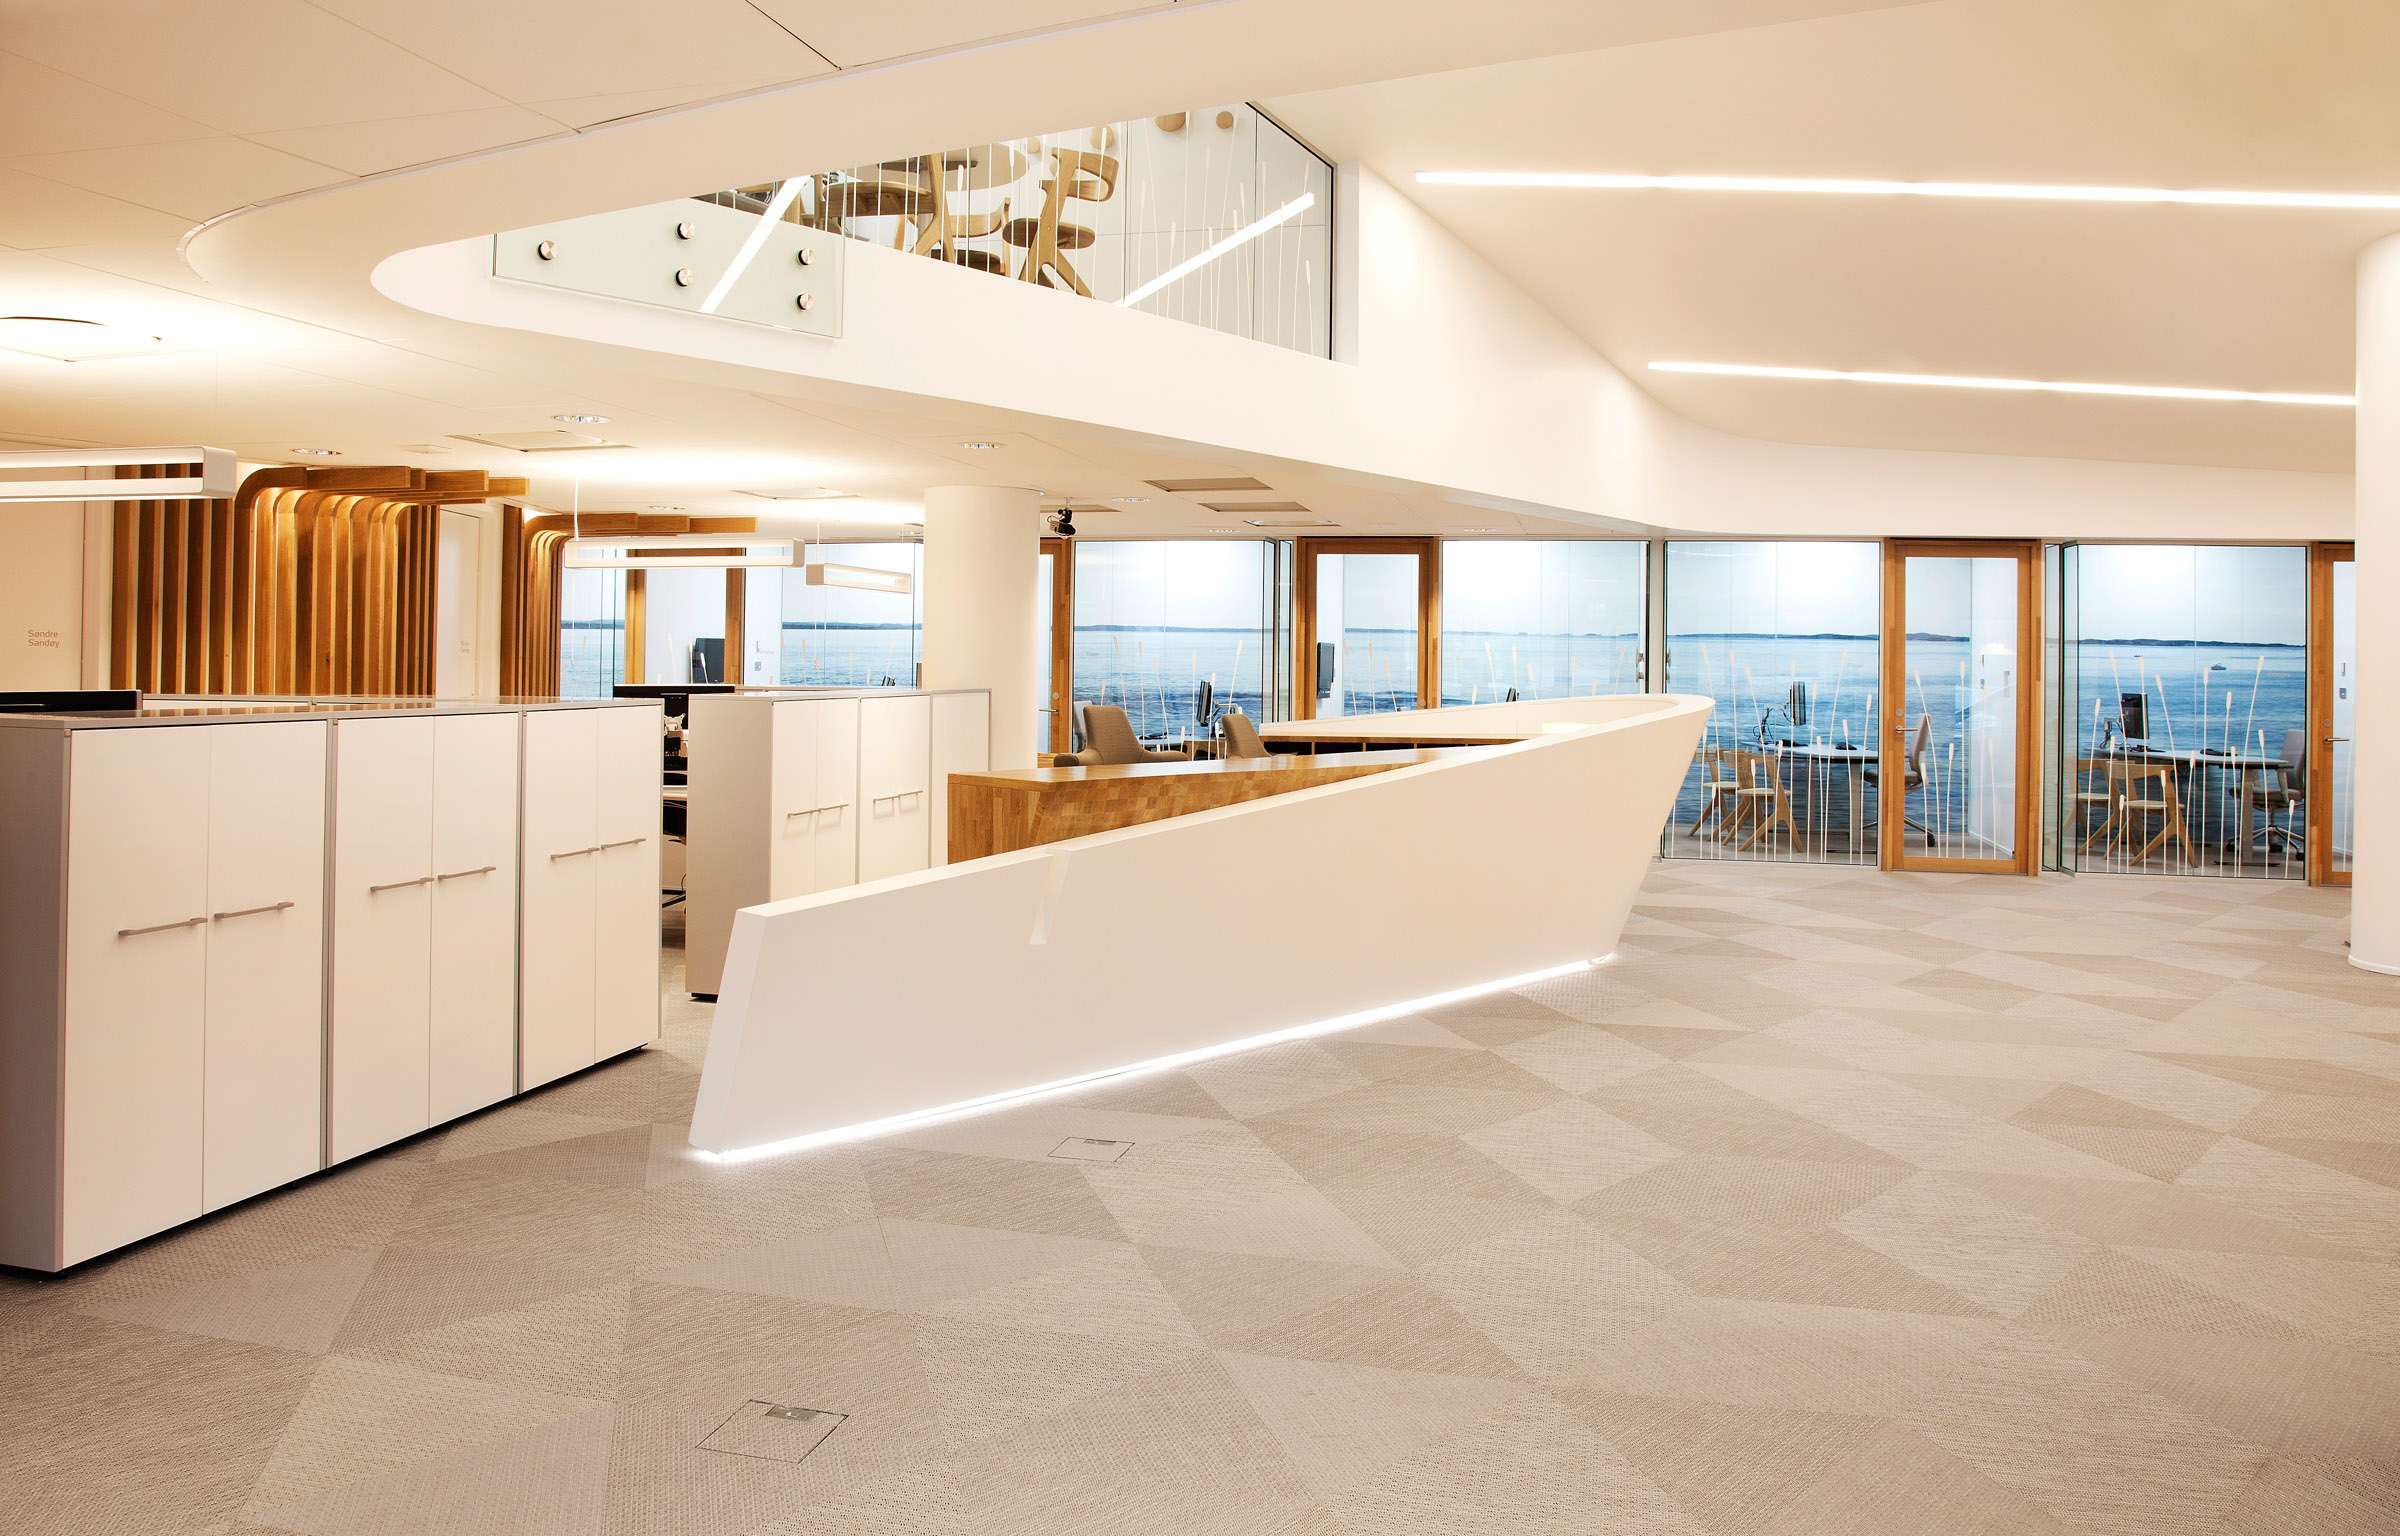 Bolon flooring in the office of Sparebank in Fredrikstad, Norway